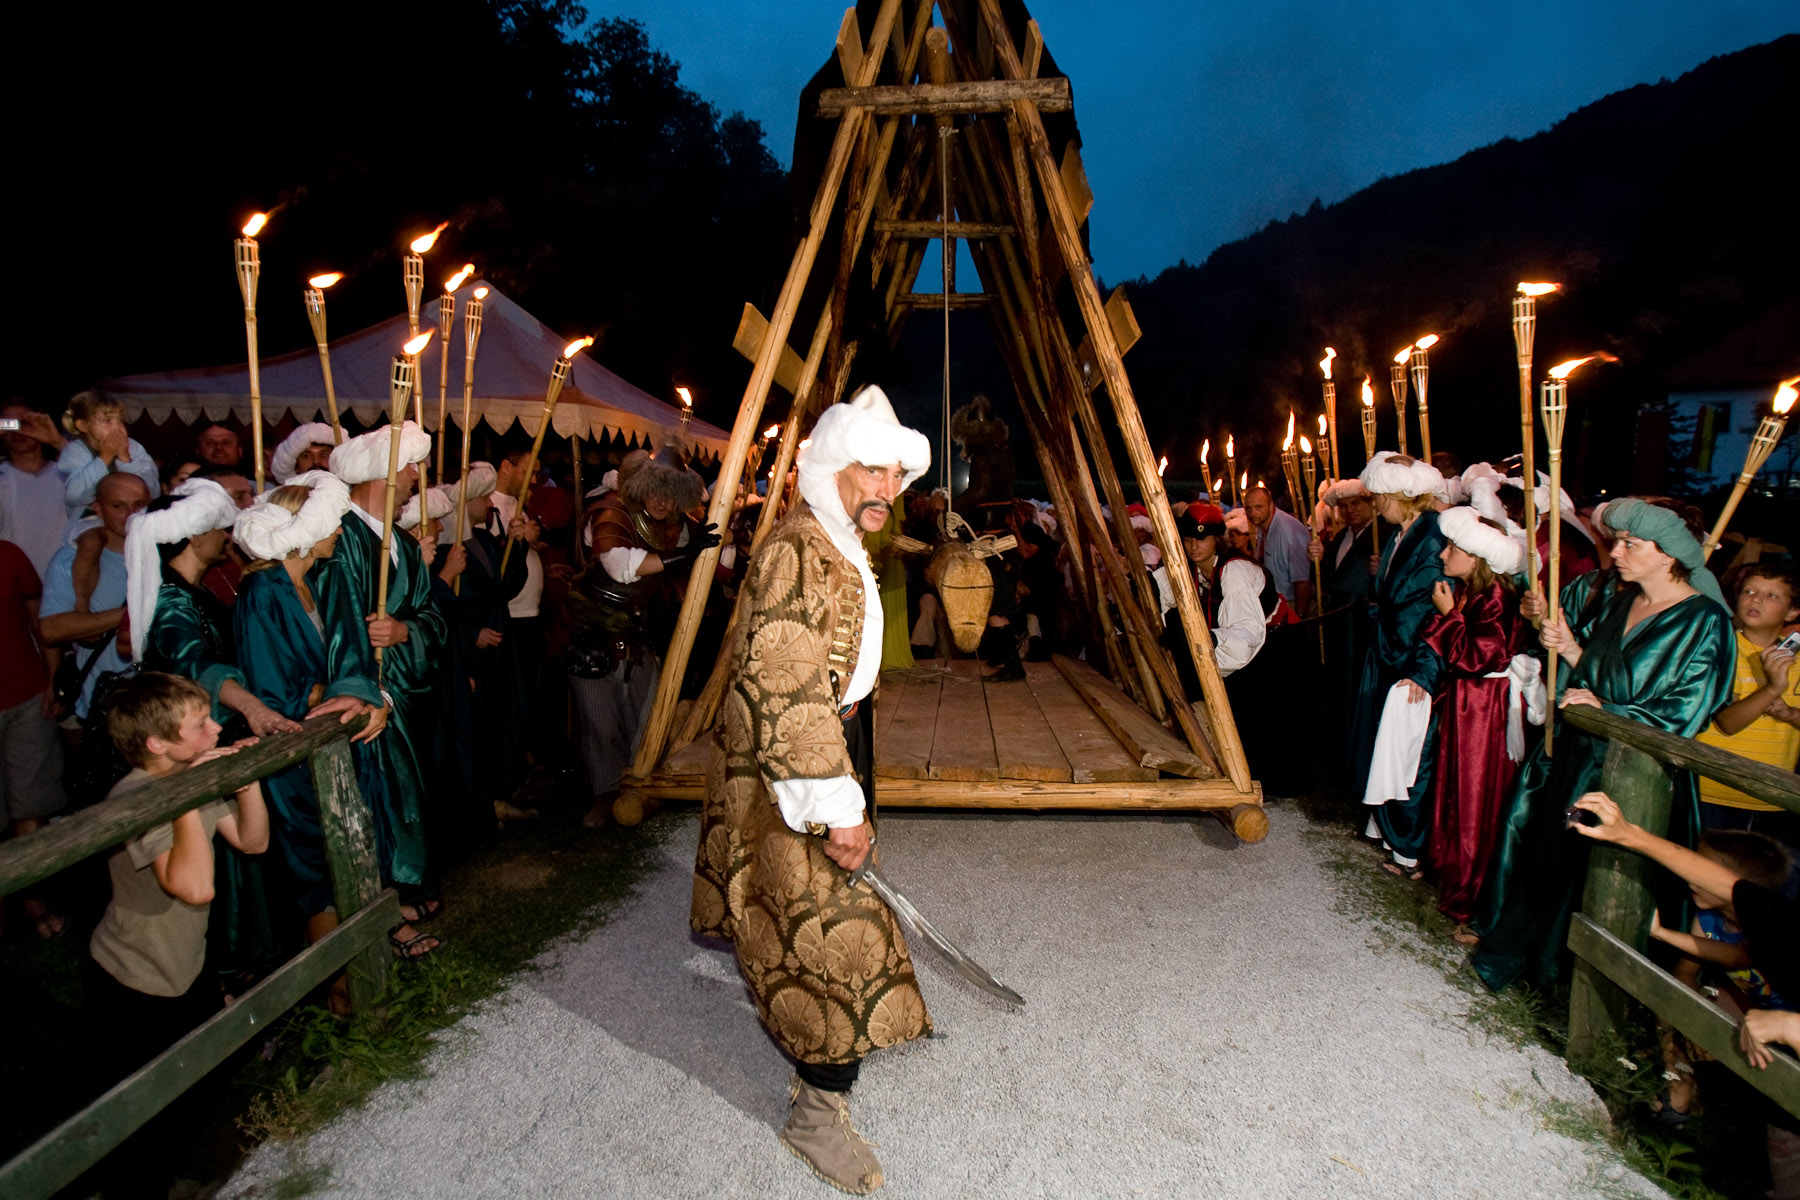 The Ottomans drag a battering ram towards the heavy door of the Zice Carthusian monastery, where the villagers and monks and lay brothers have hidden before. This was the climax of the two-day Fiery Carthusia Medieval event in 2007.